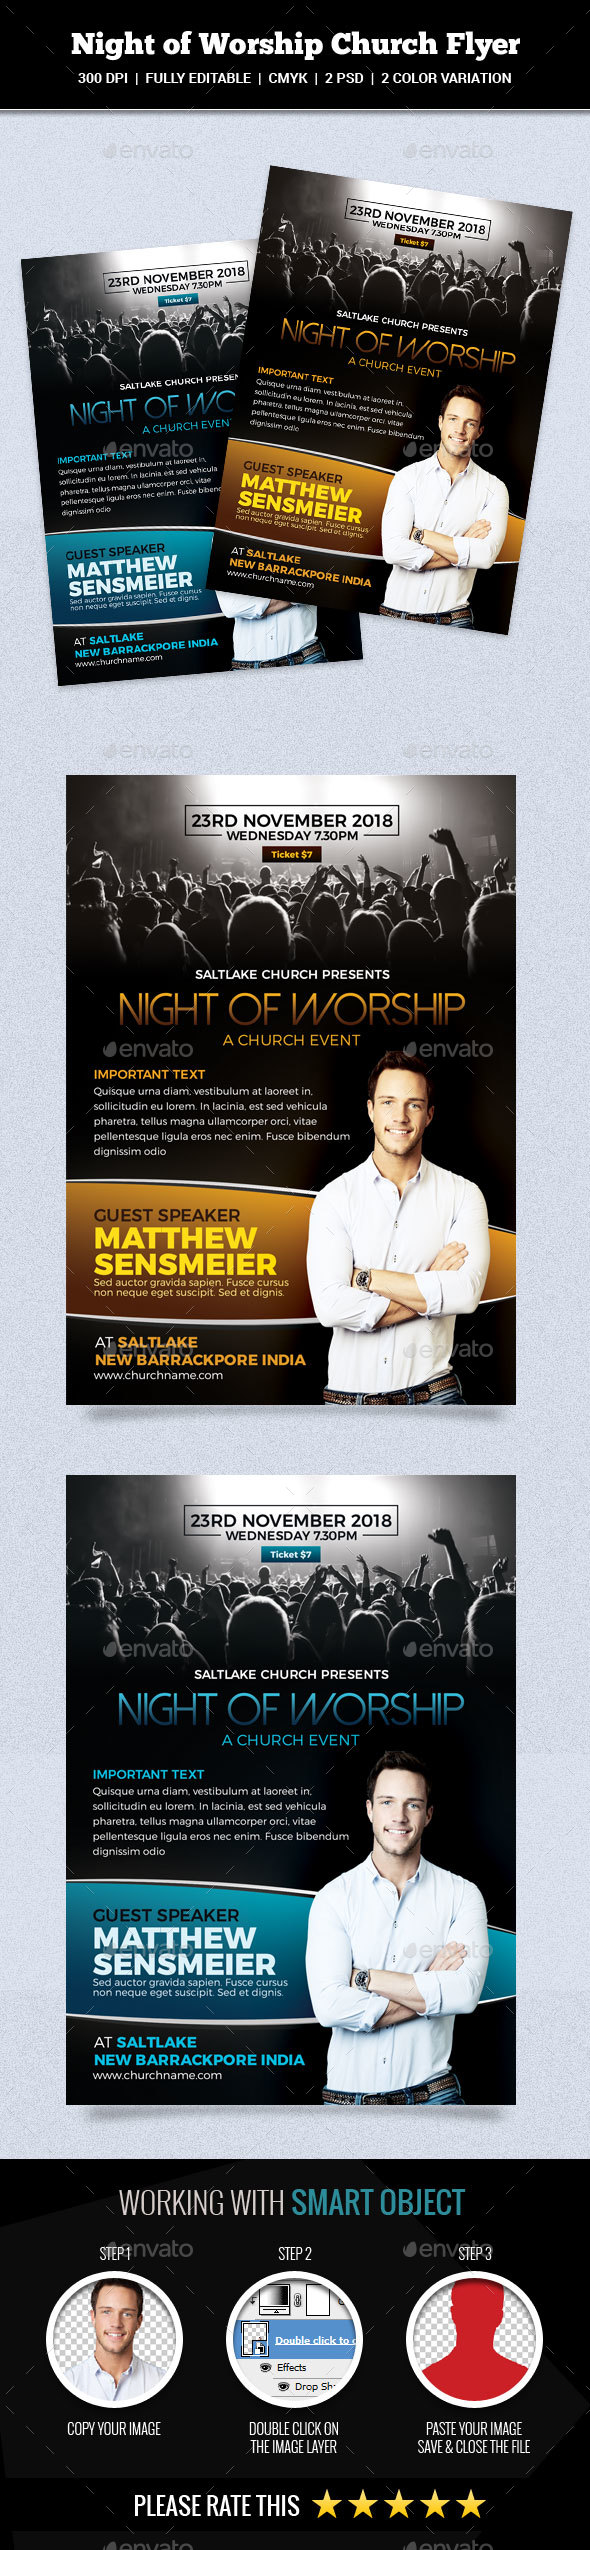 Night of Worship Church Flyer - Church Flyers